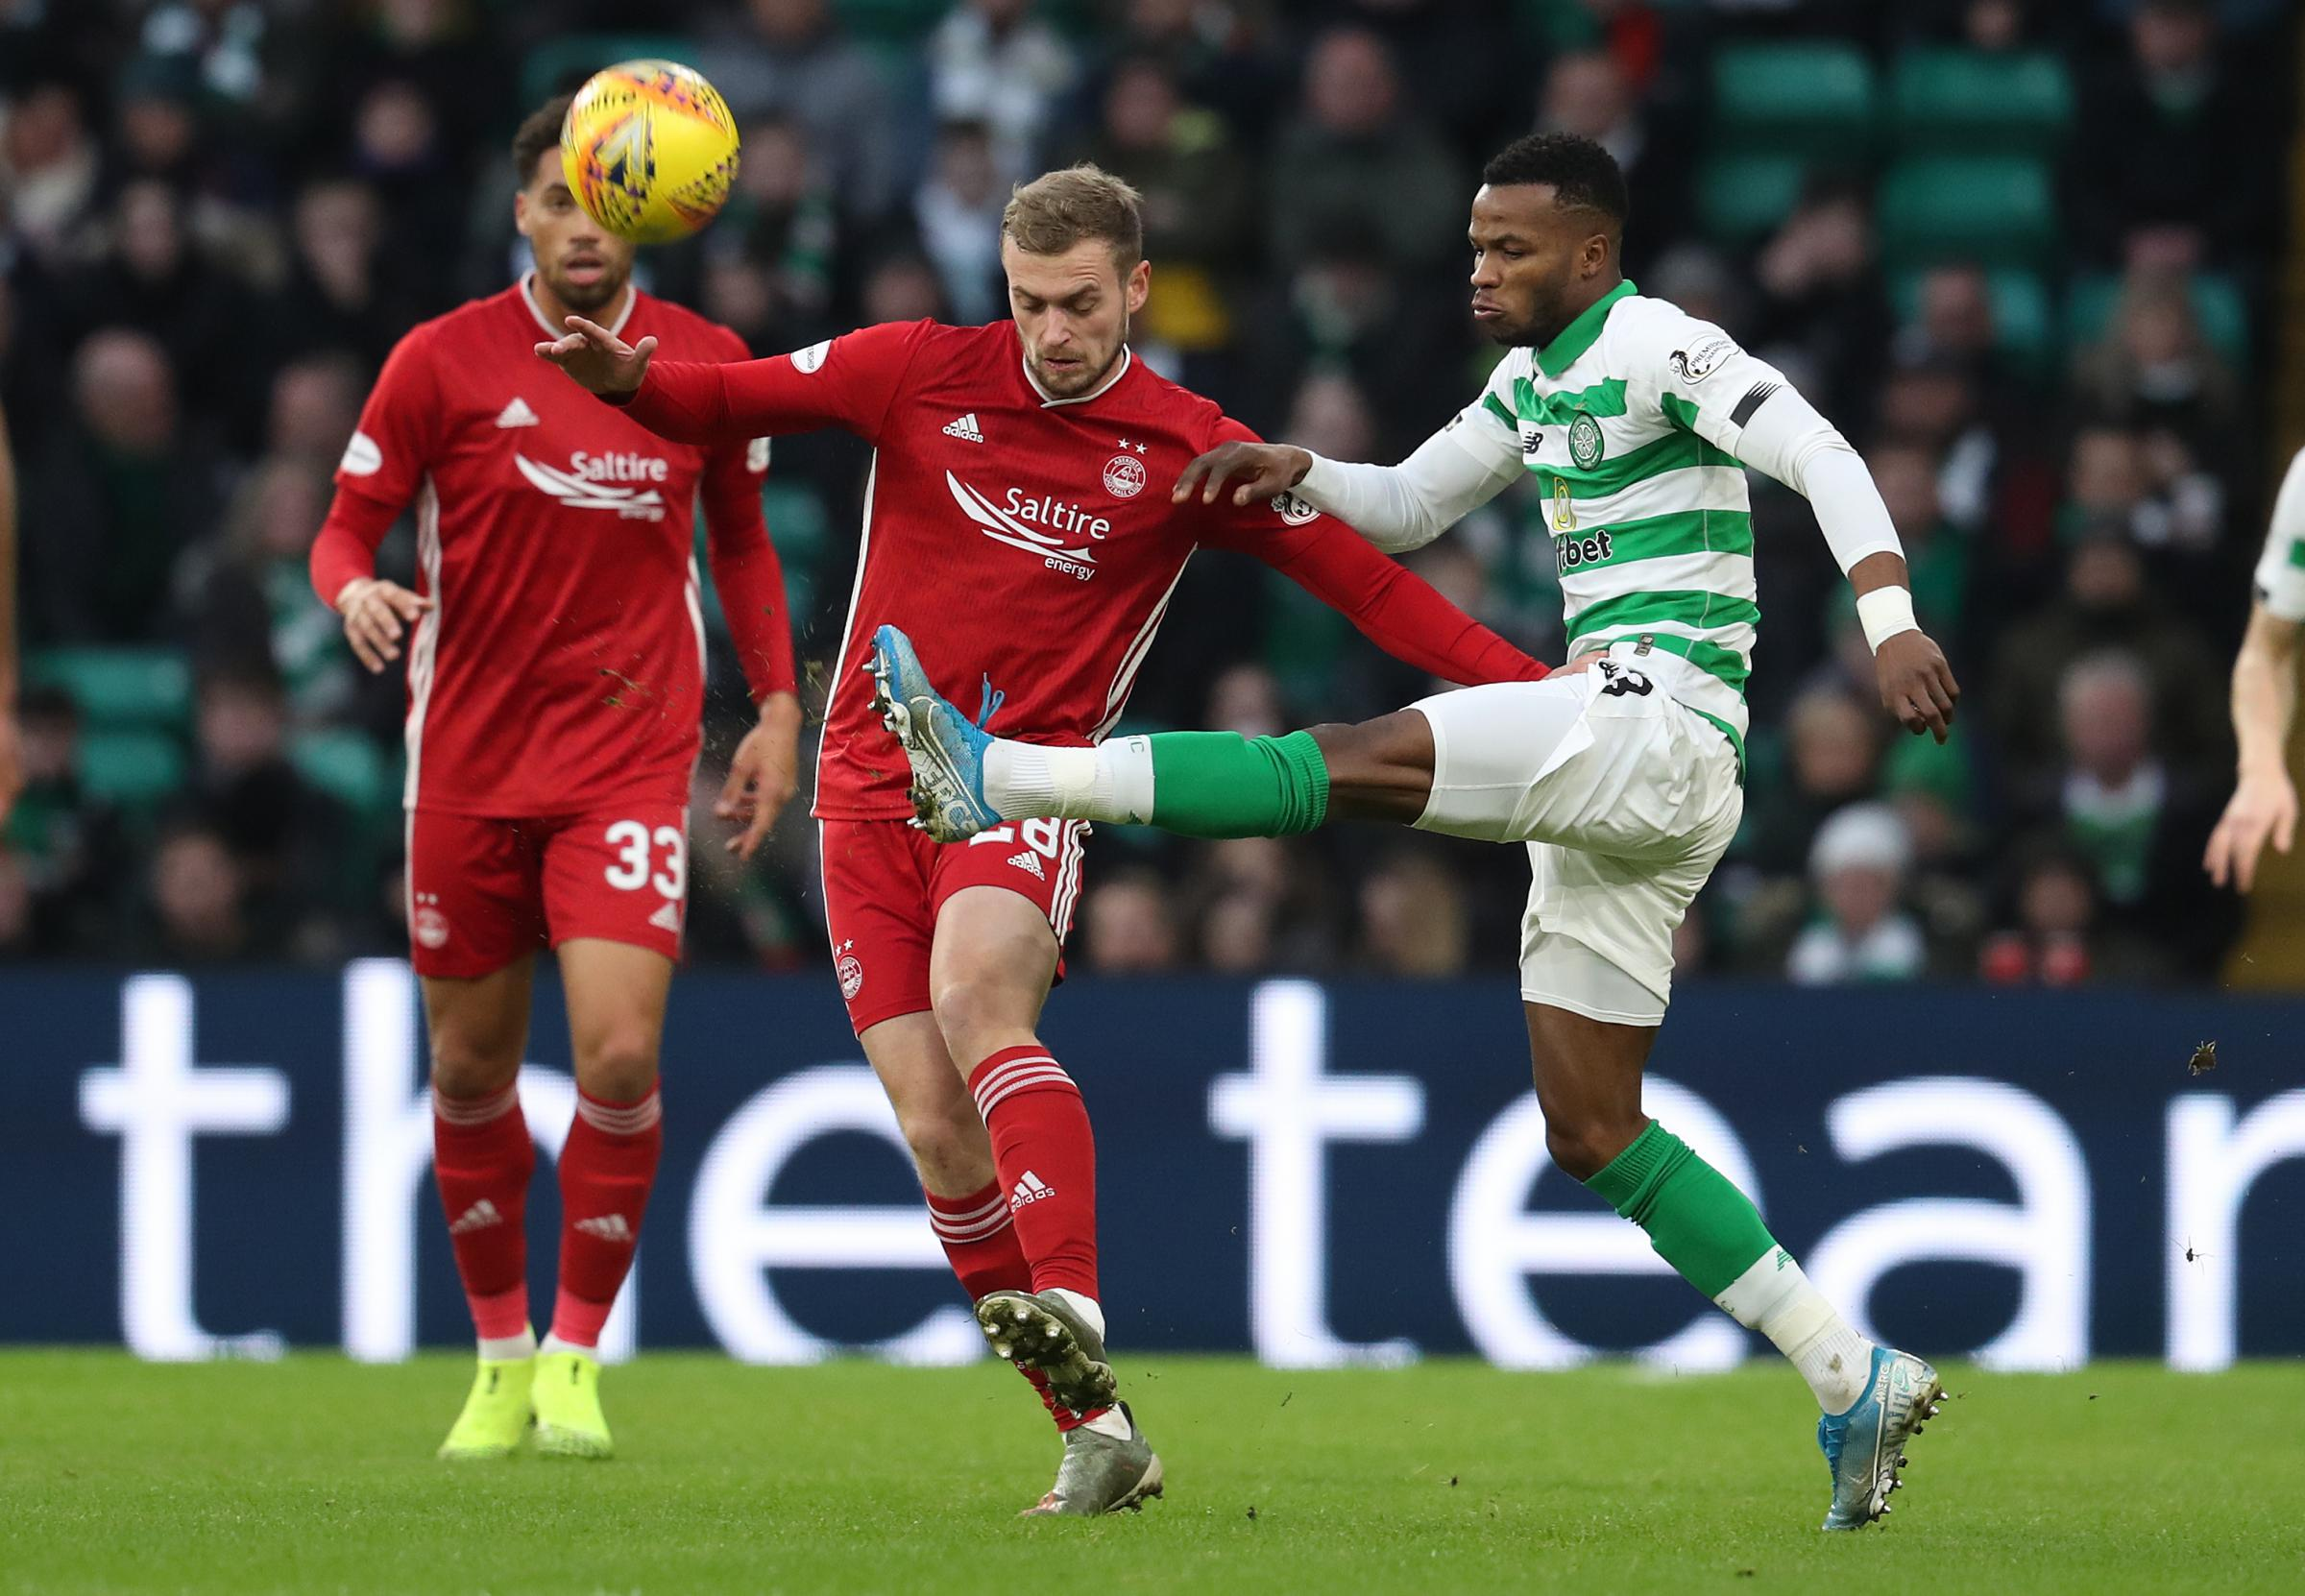 BREAKING: Celtic and Aberdeen matches postponed